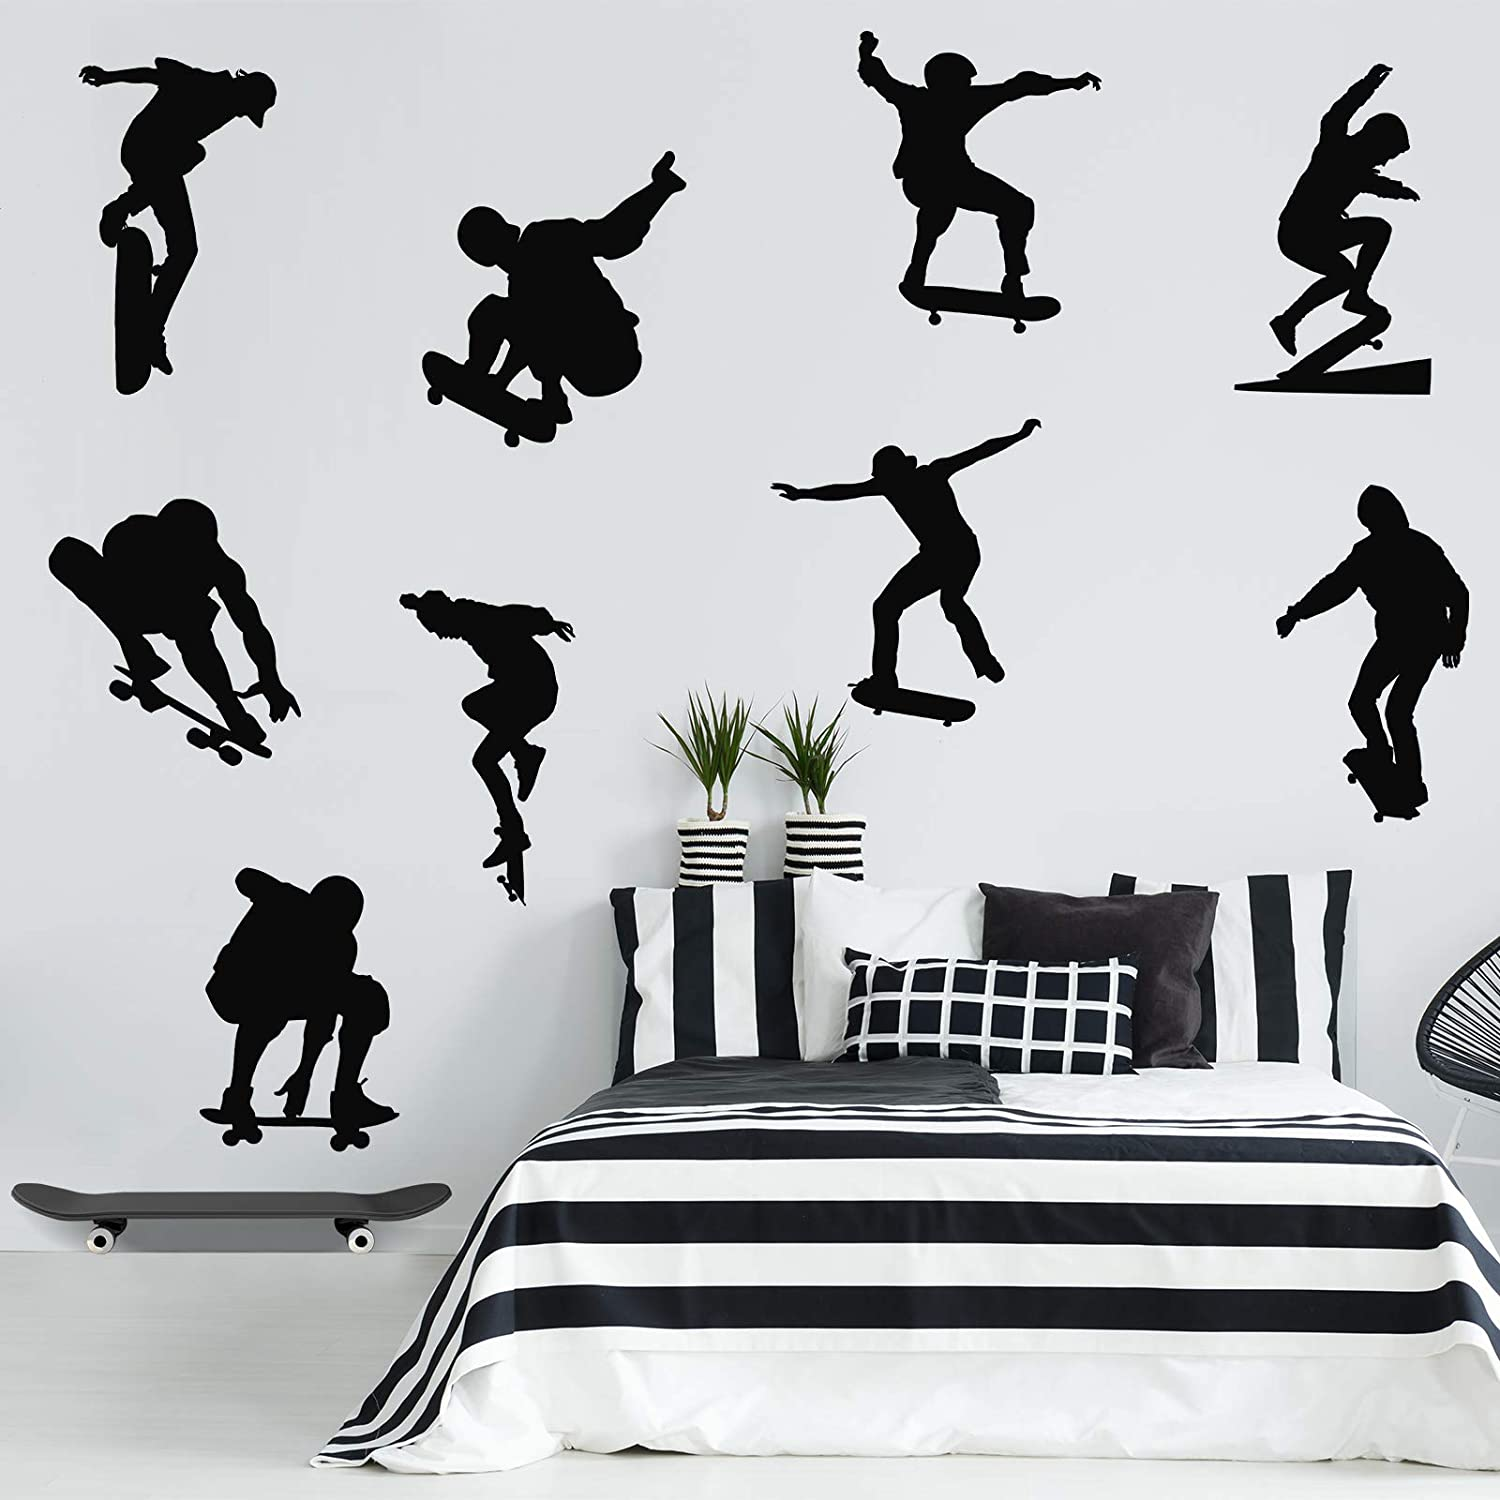 9 Pieces Playing Skateboards Wall Decal Nursery Playroom Decoration Skateboard Sports Murals PVC Home Bedroom Wall Sticker Decal for Boys Teen Baby Living Room